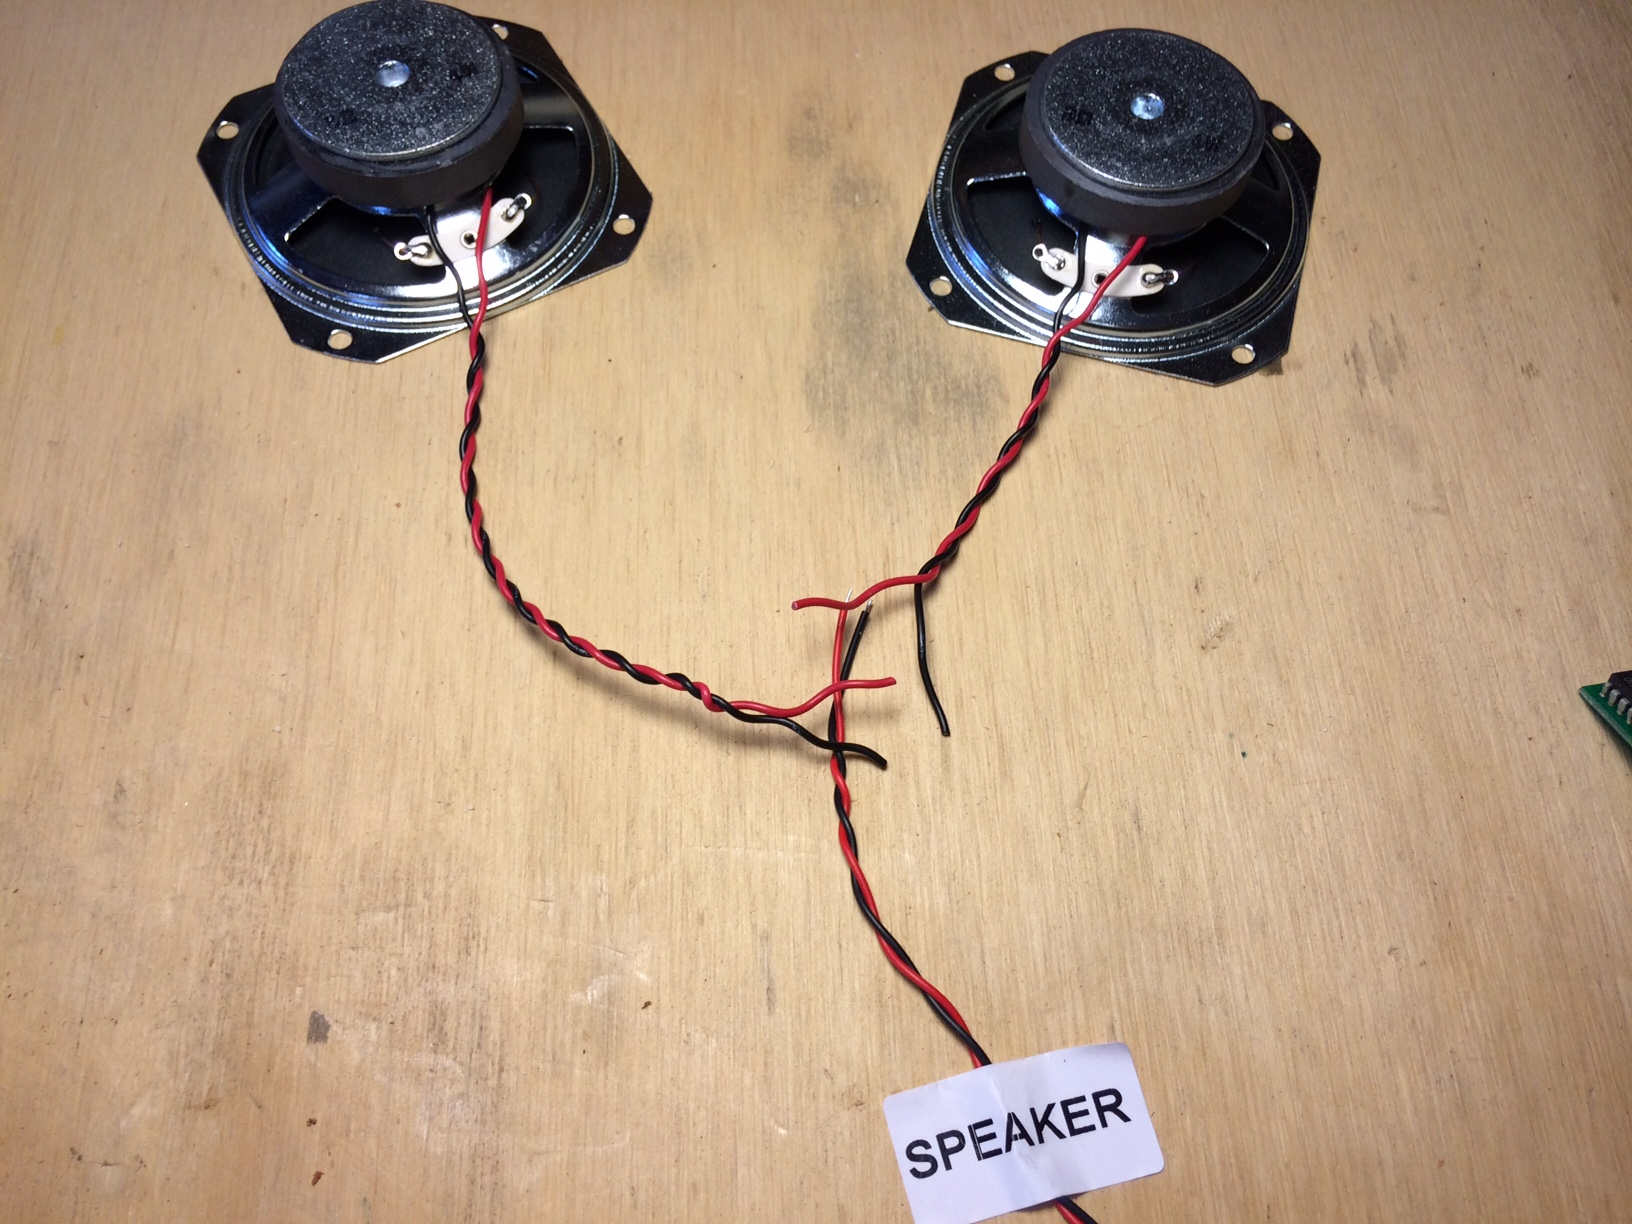 Easy Project Build This Dual Speaker Tweed Guitar Amplifier C B Wiring In Parallel Speakers Step Three Were Going To Mod The Kit Slightly By Two Simply Means Run Wires From Each